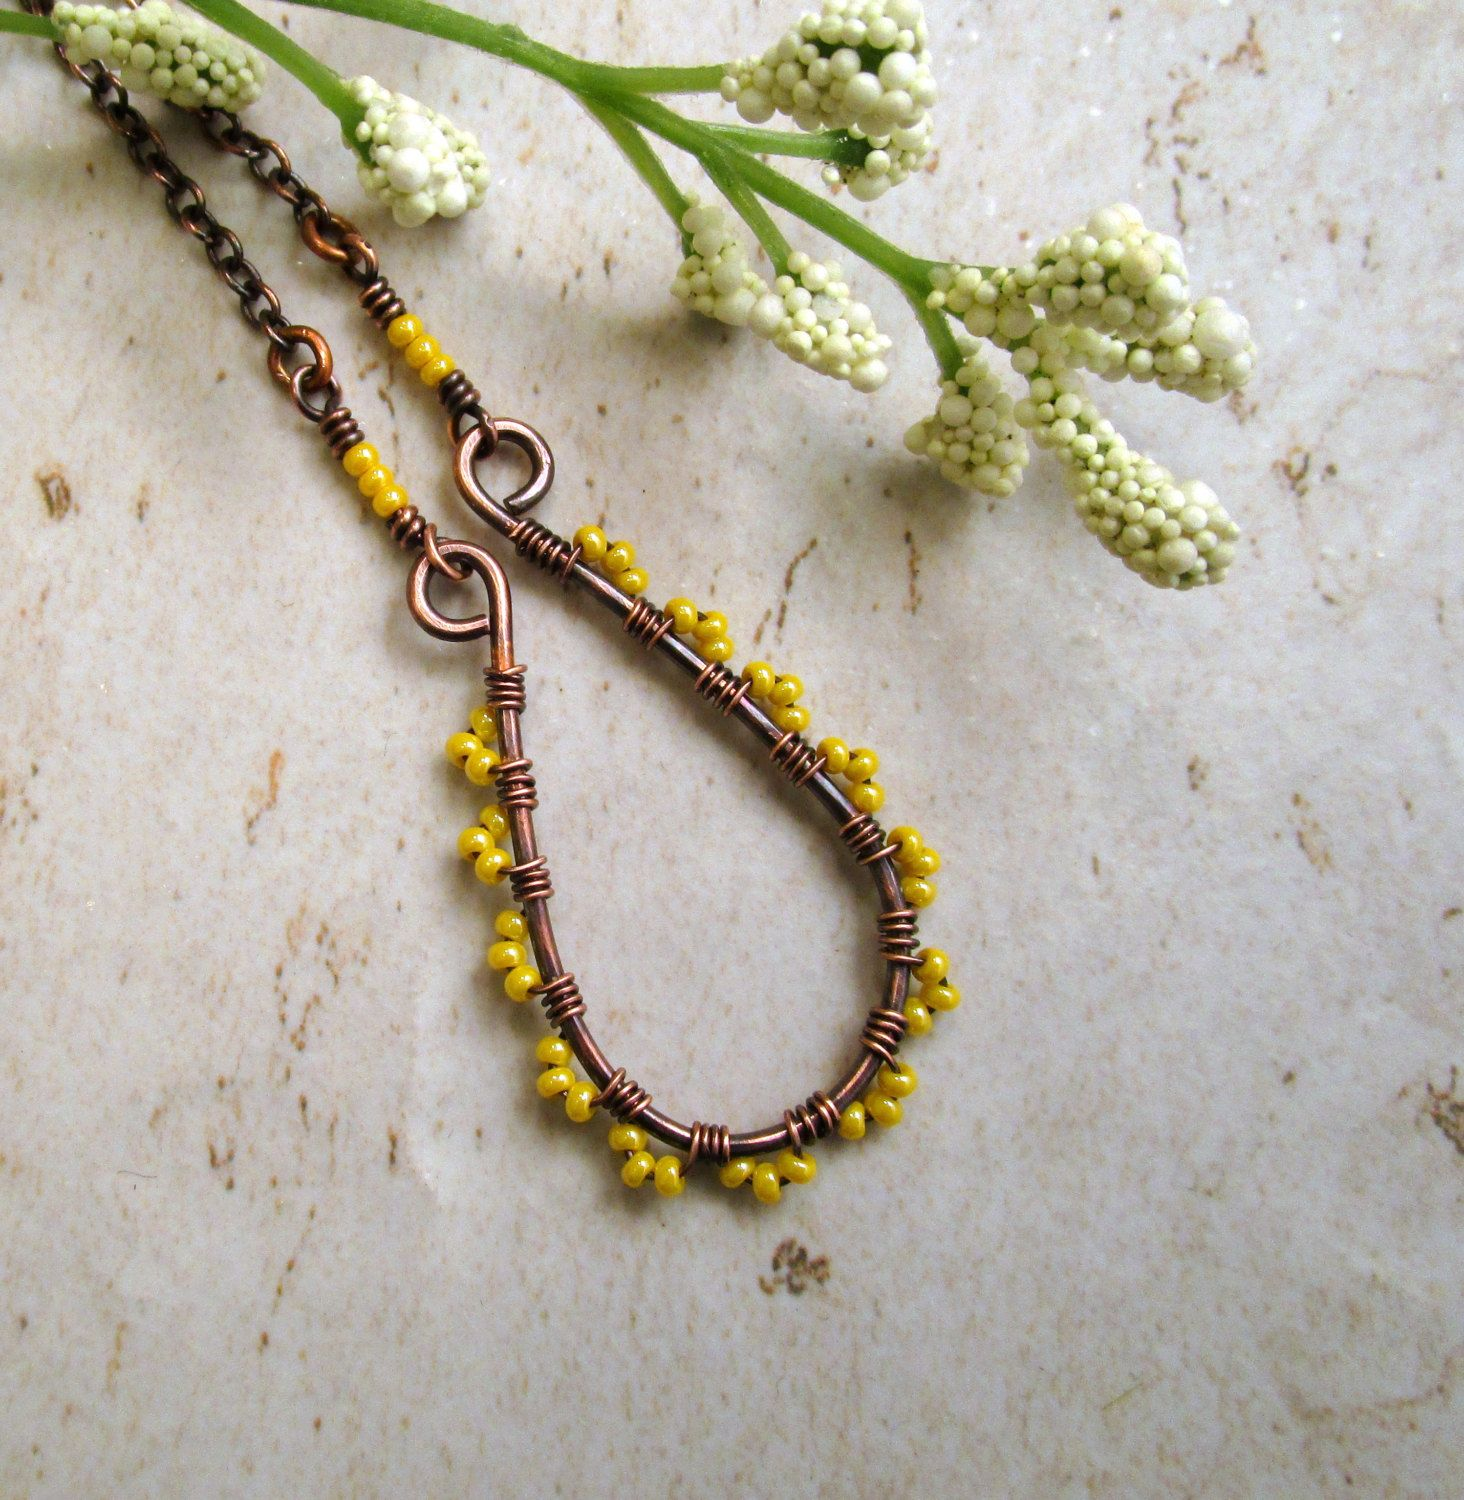 wire necklace day wrapping tutorial with beginners beaded bead for ww